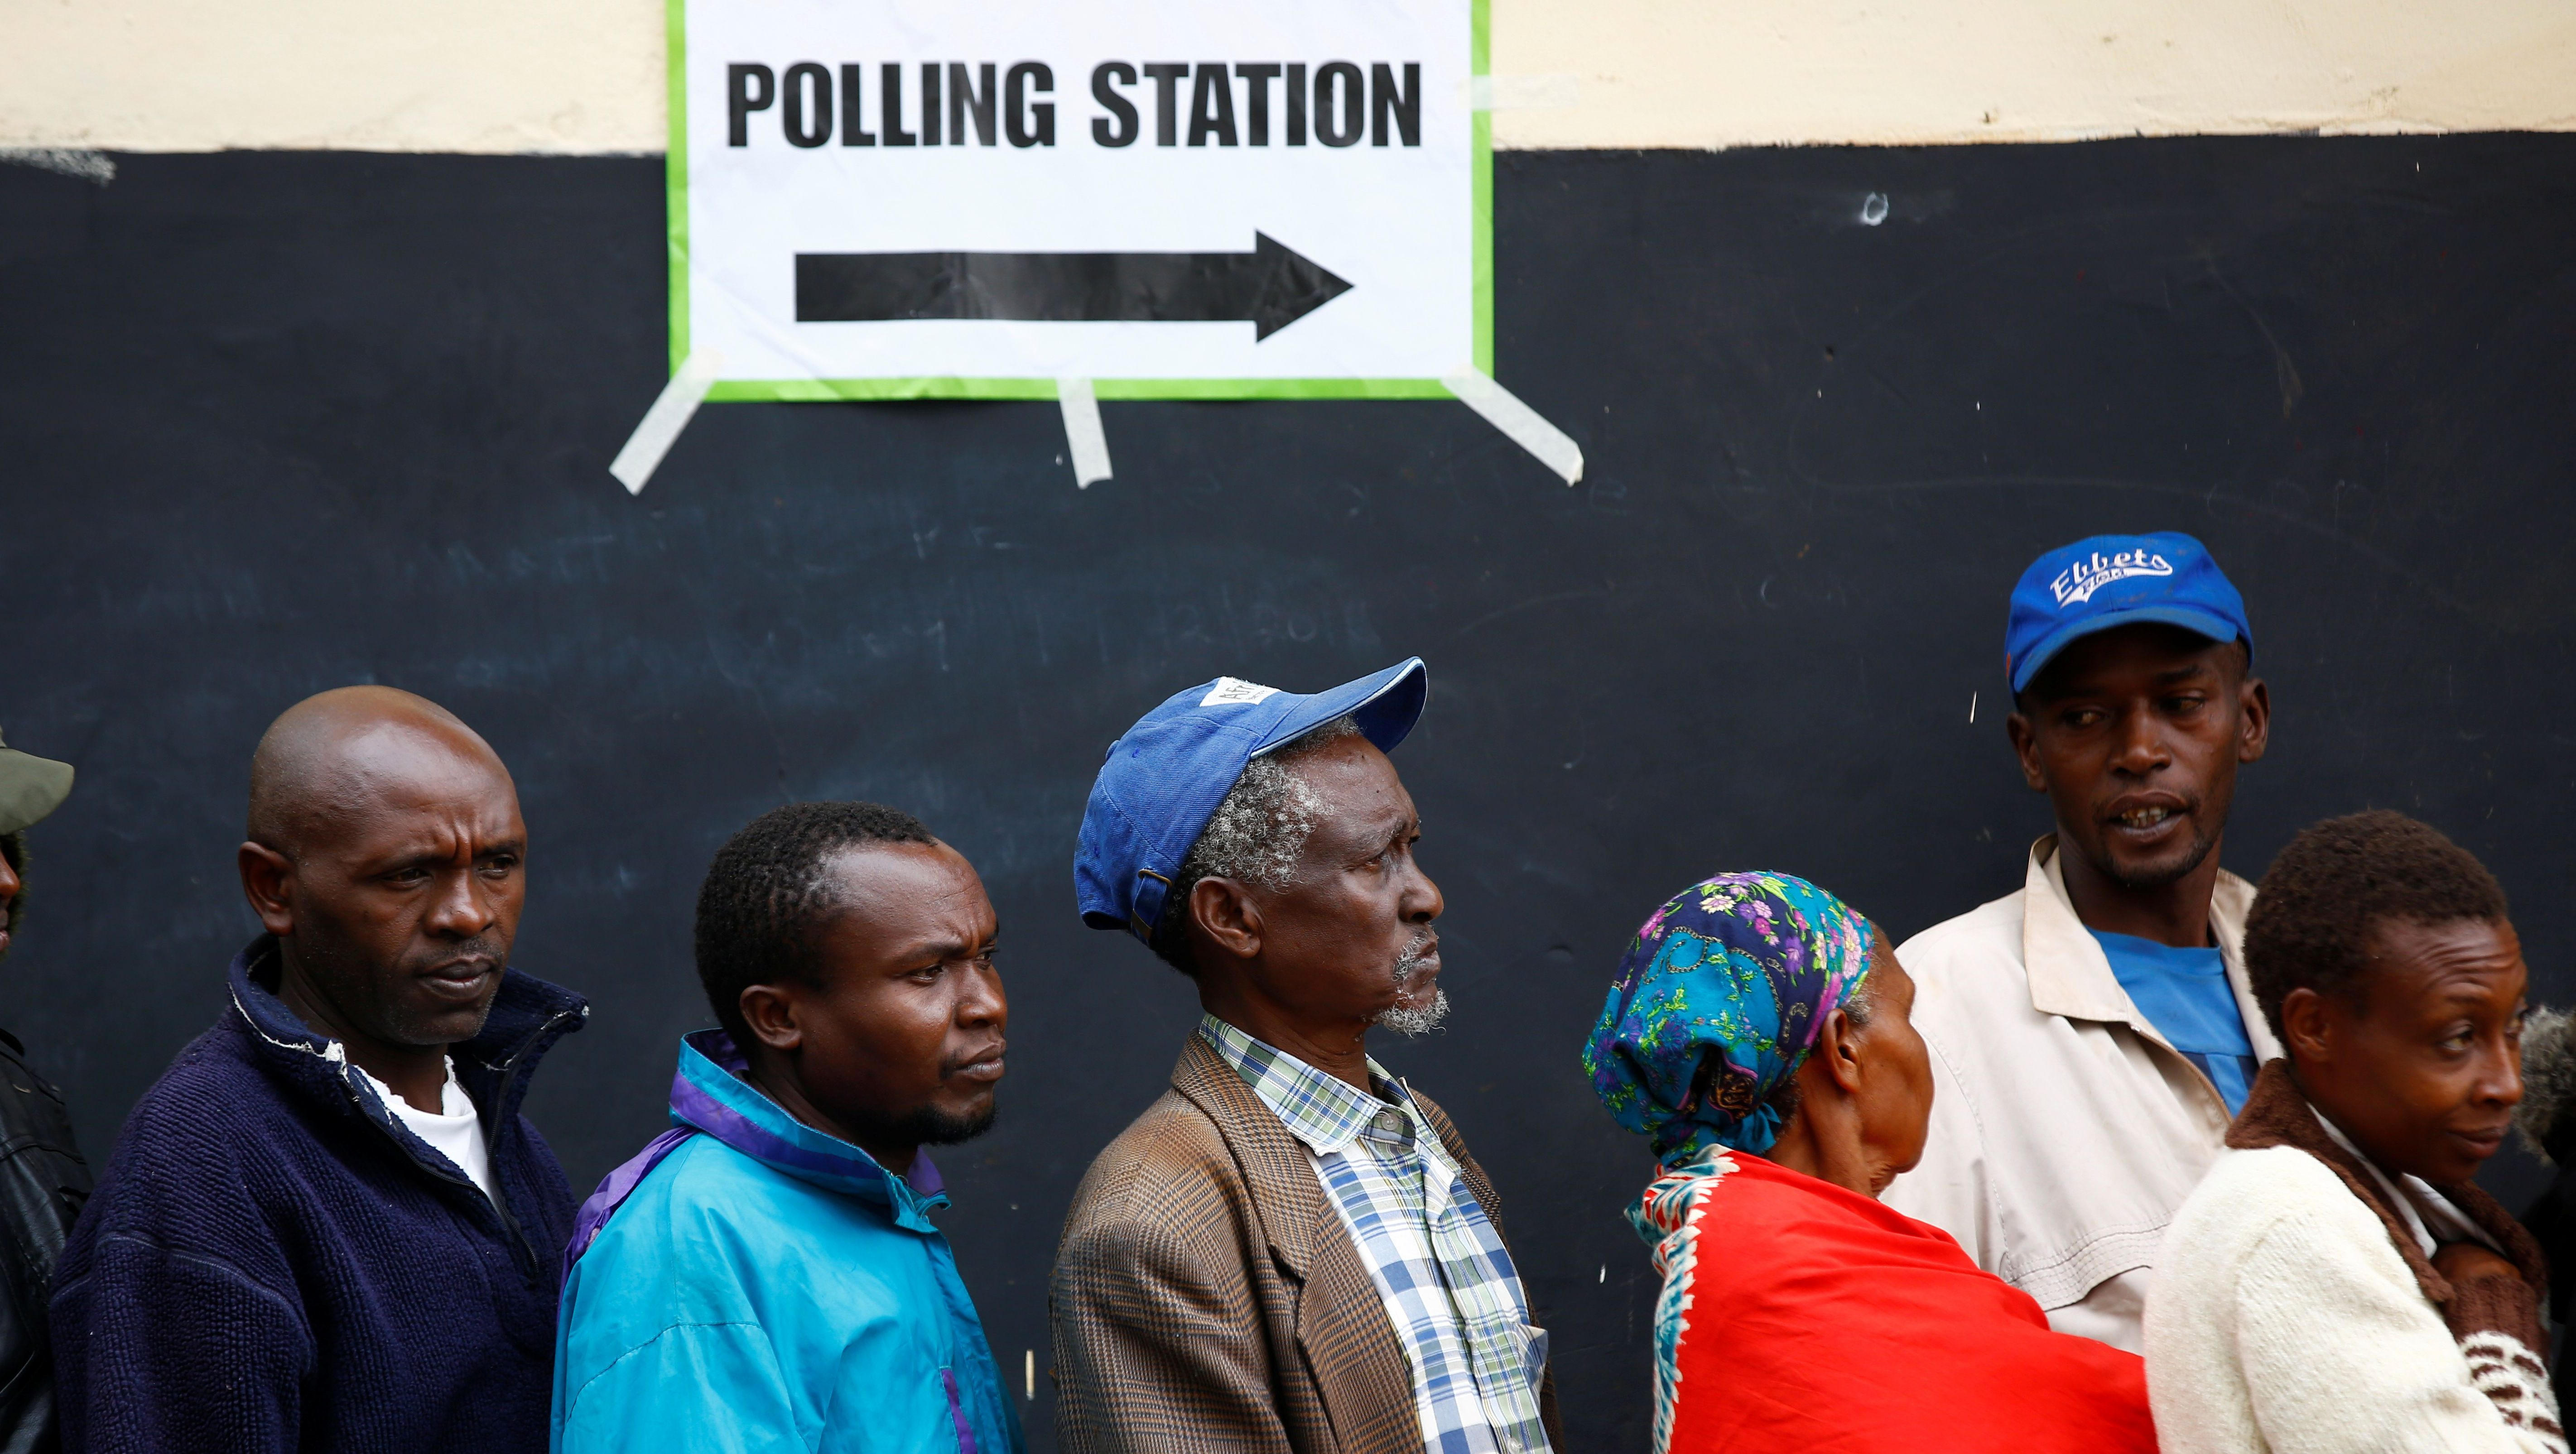 People queue to cast their votes at a polling station during a presidential election re-run in Gatundu, Kenya October 26, 2017.